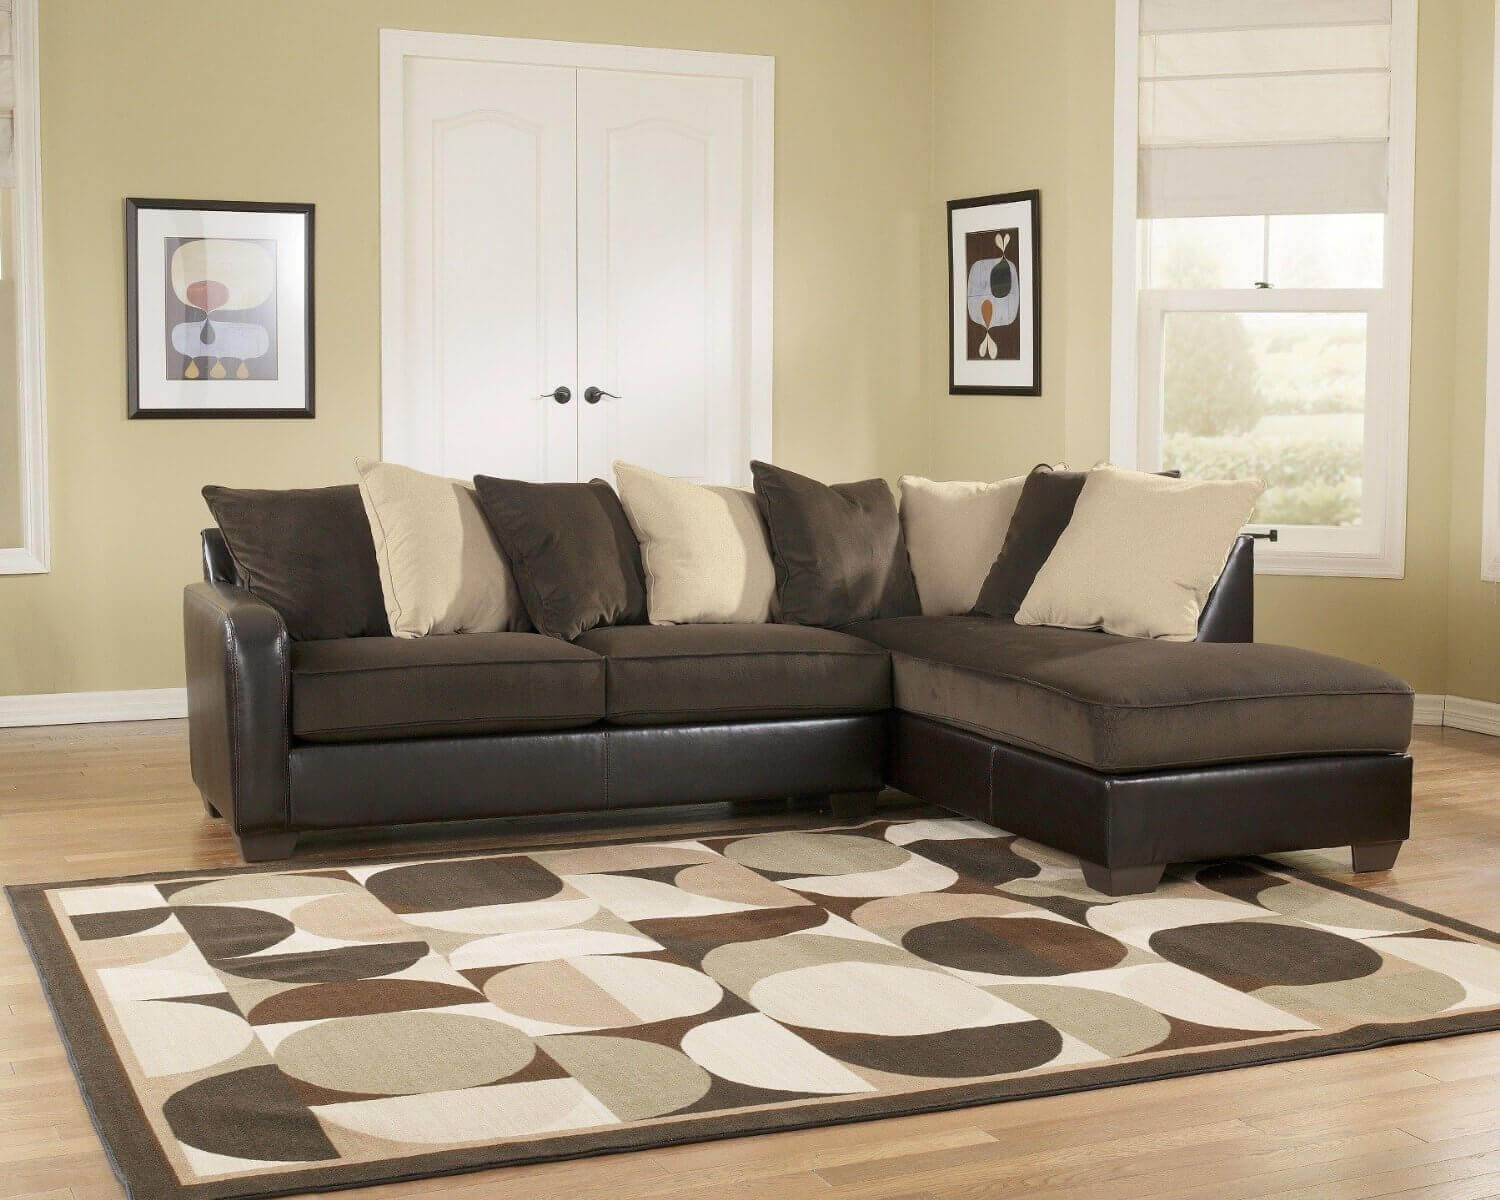 Cream Colored Sectional Sofa - Hotelsbacau inside Diana Dark Brown Leather Sectional Sofa Set (Image 14 of 30)